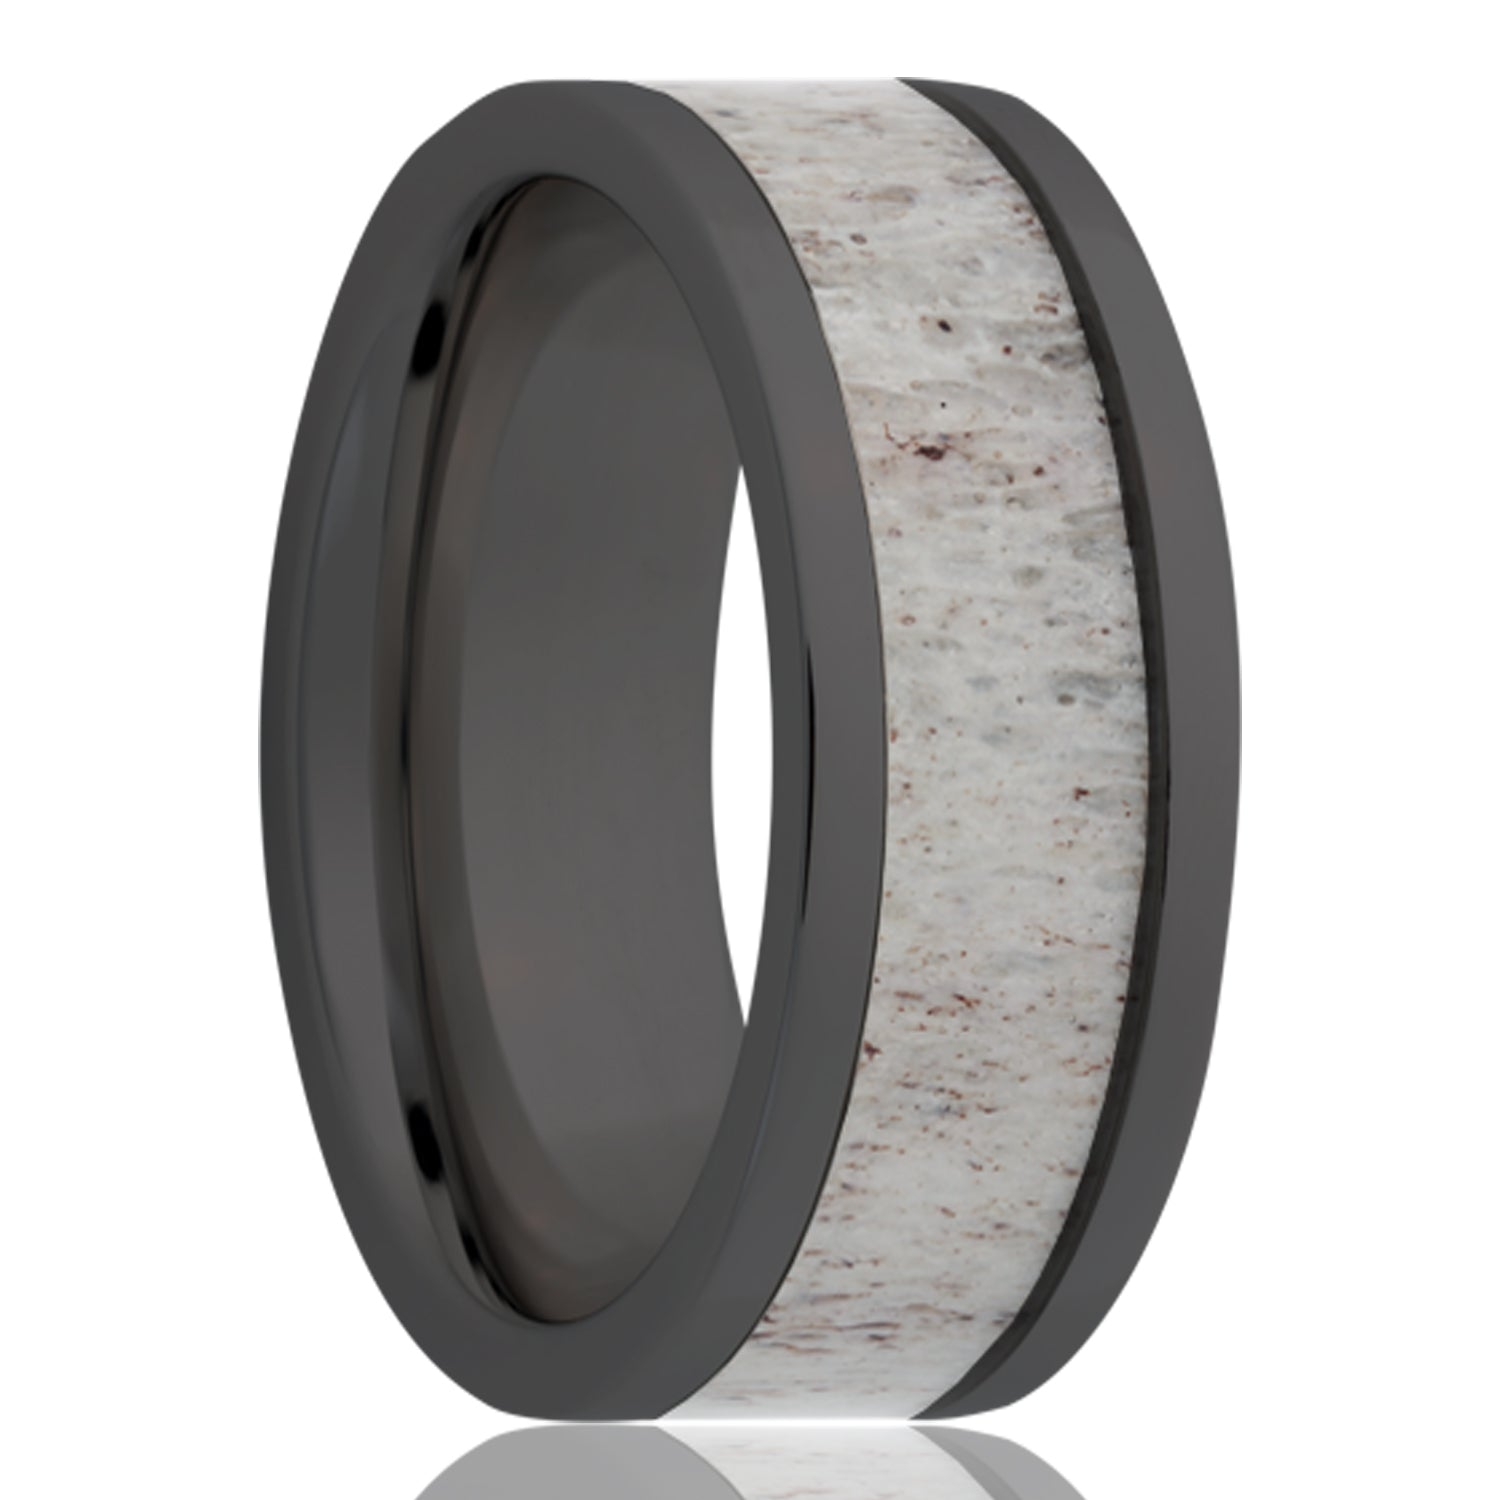 Mens Black ceramic wedding band with deer antler inlay.